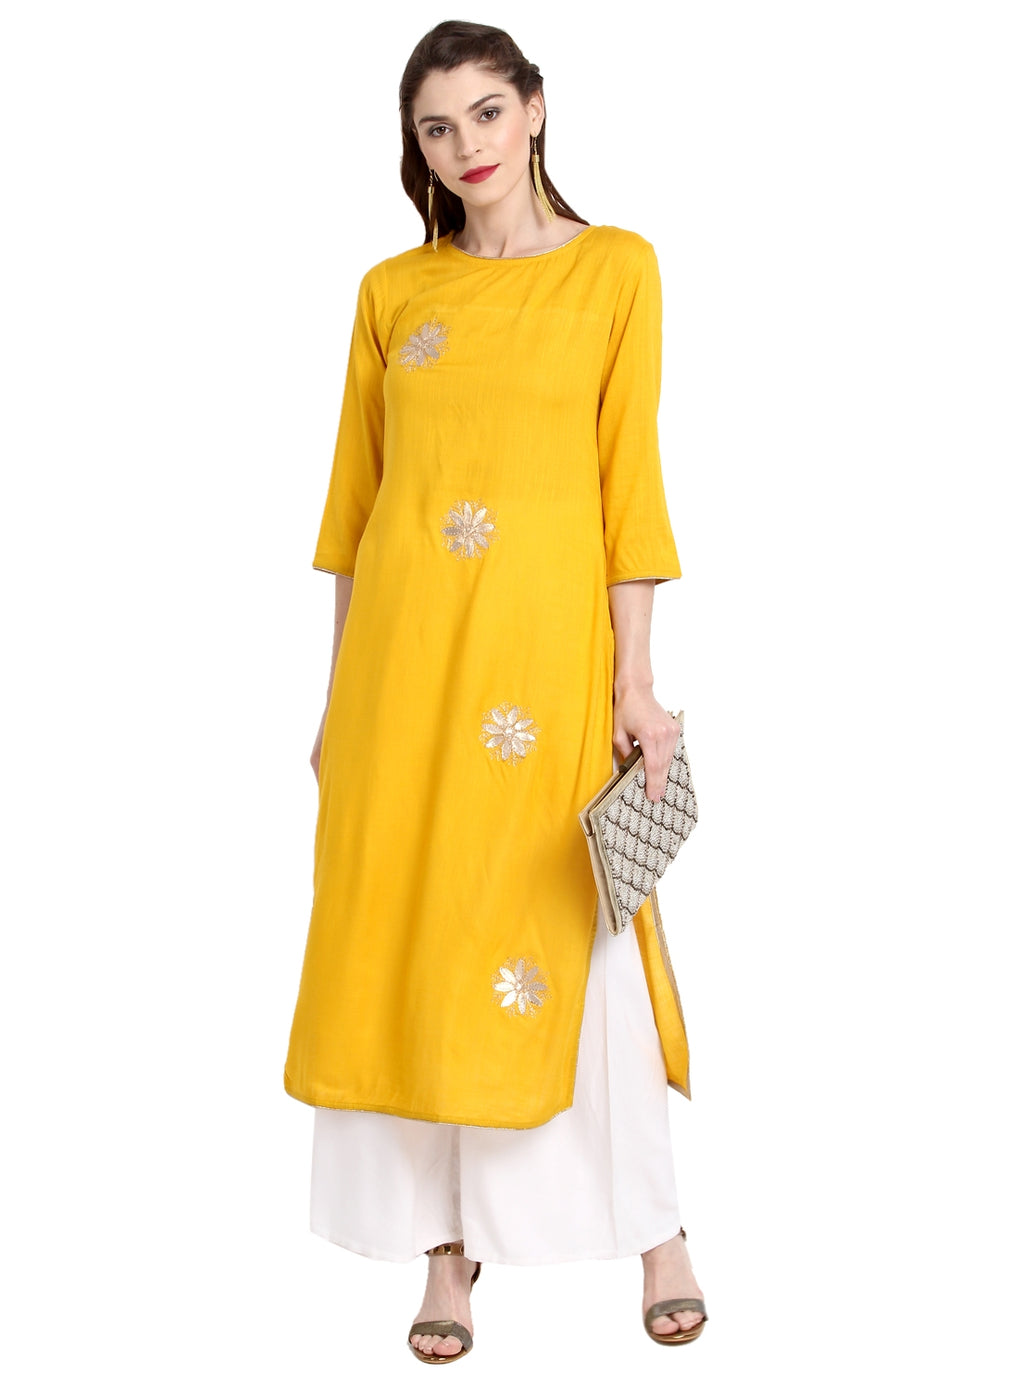 Yellow Color Cotton Readymade Party Wear Kurtis ( Sizes-36,38,40,42,44) Janasya Catlog SJ-10249